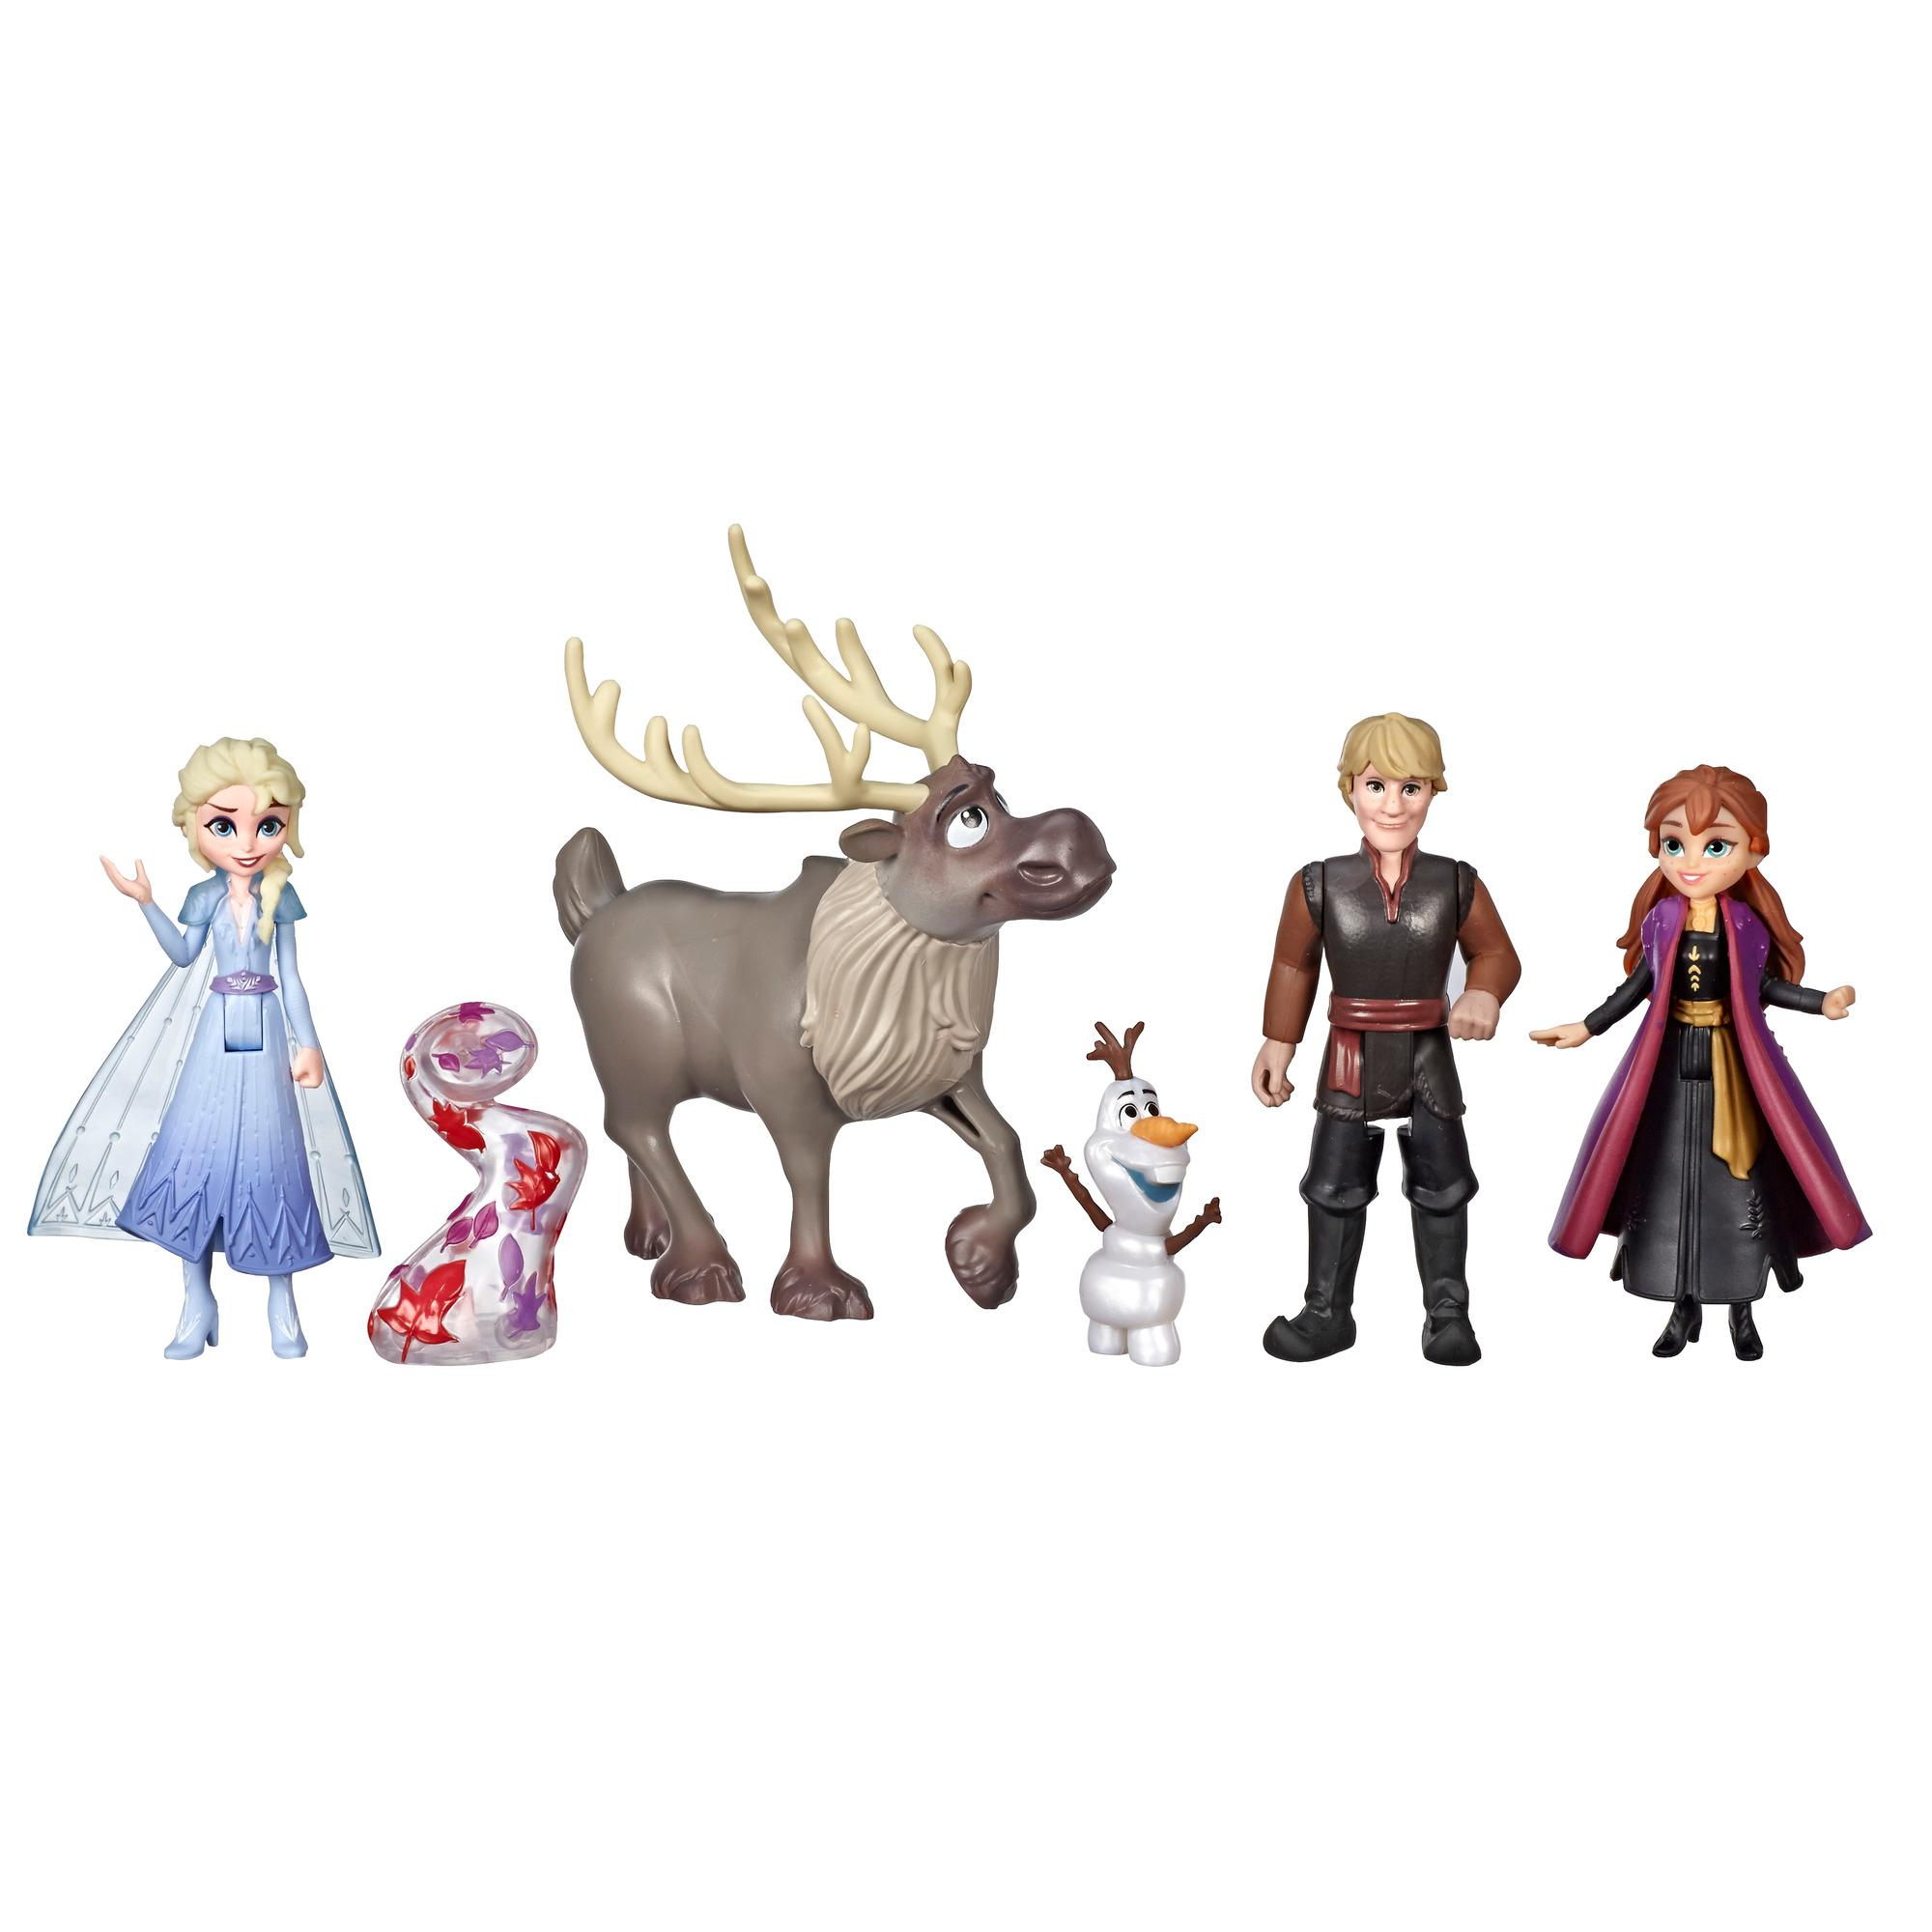 Disney Frozen Adventure Collection, 5 Small Dolls from Frozen 2